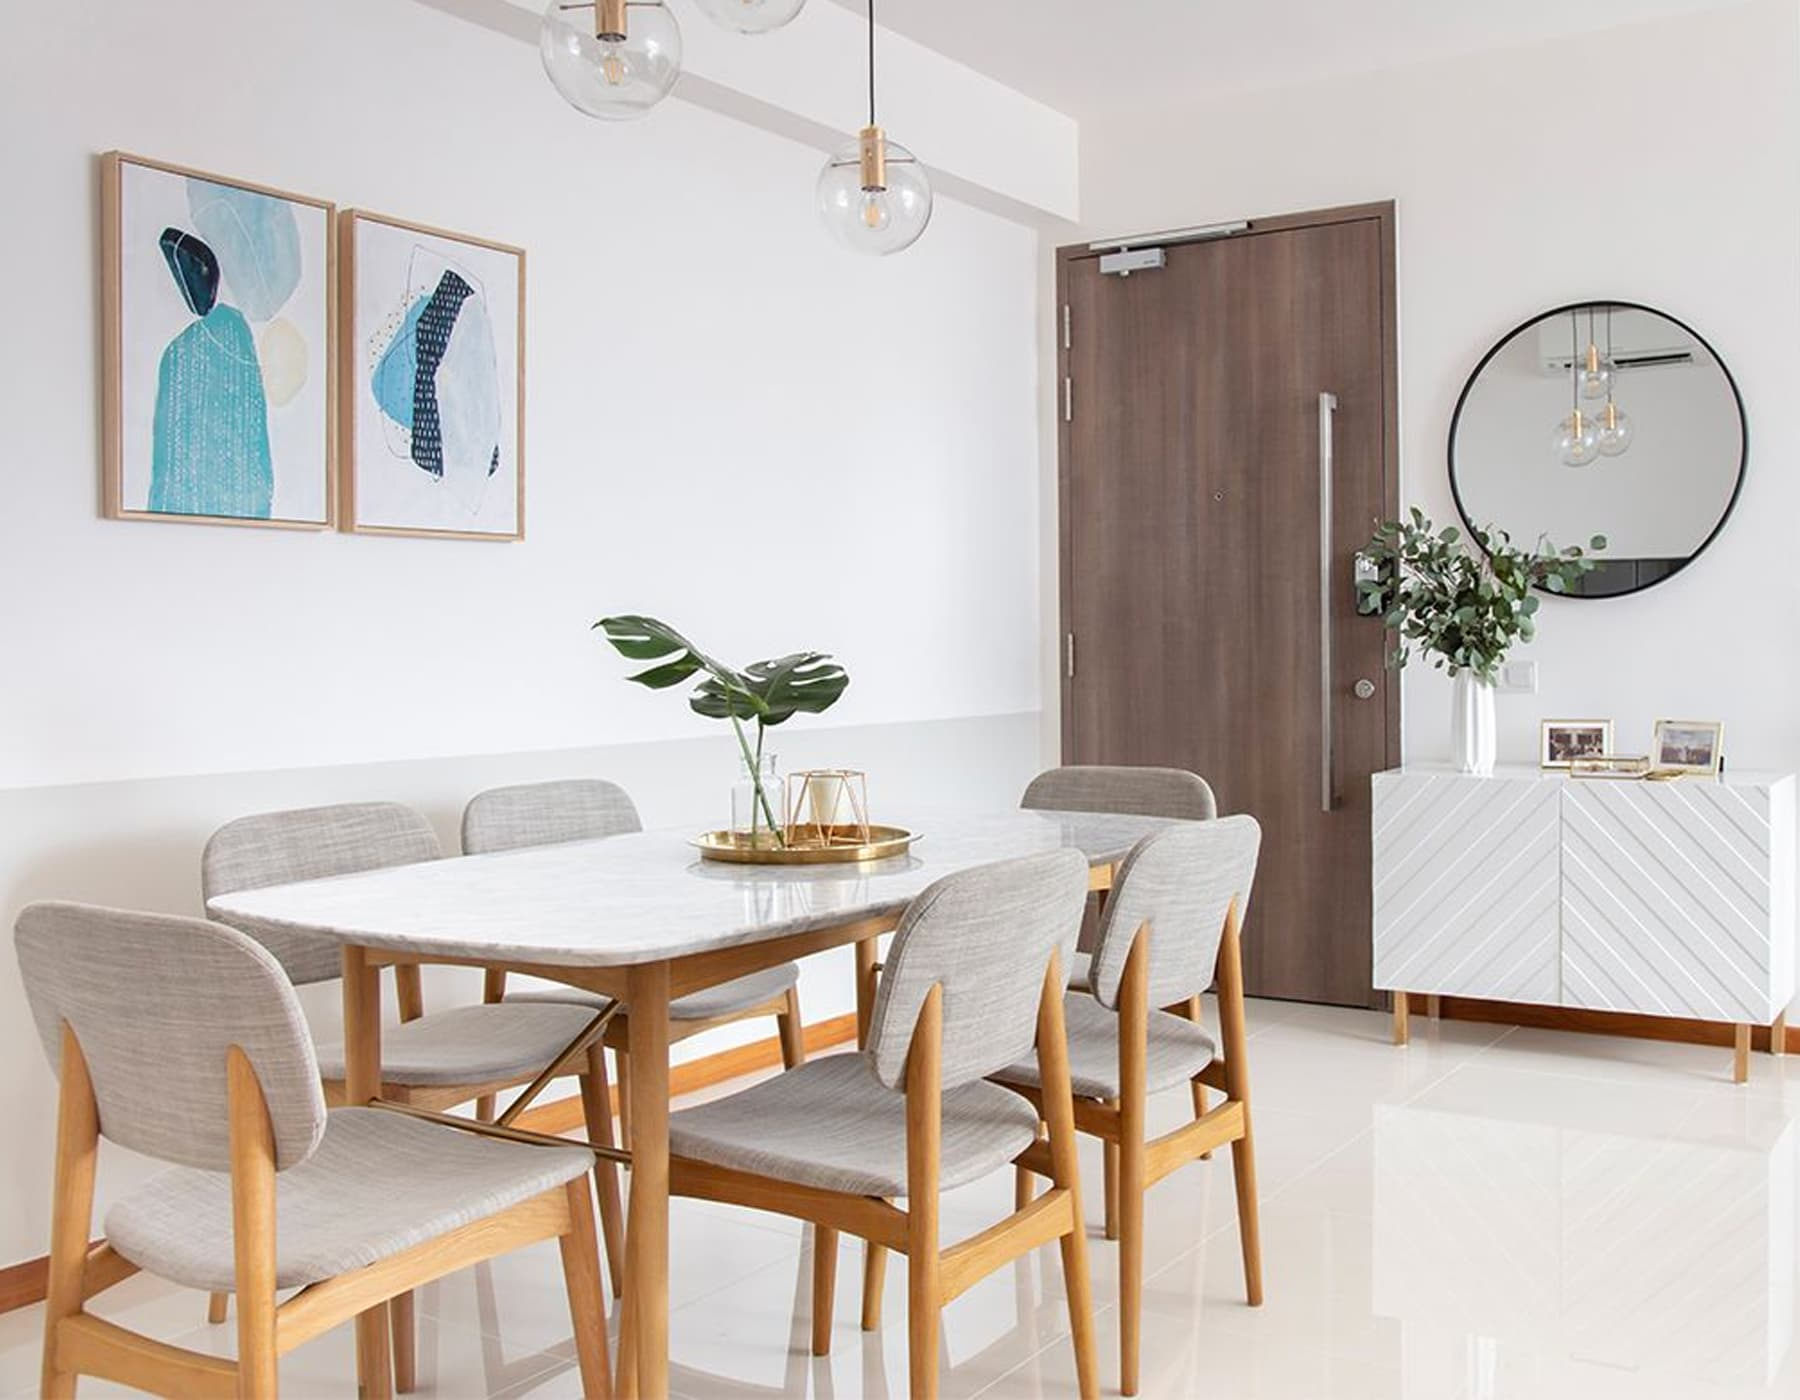 marble dining table with wooden dining chairs in mid-century modern space with console